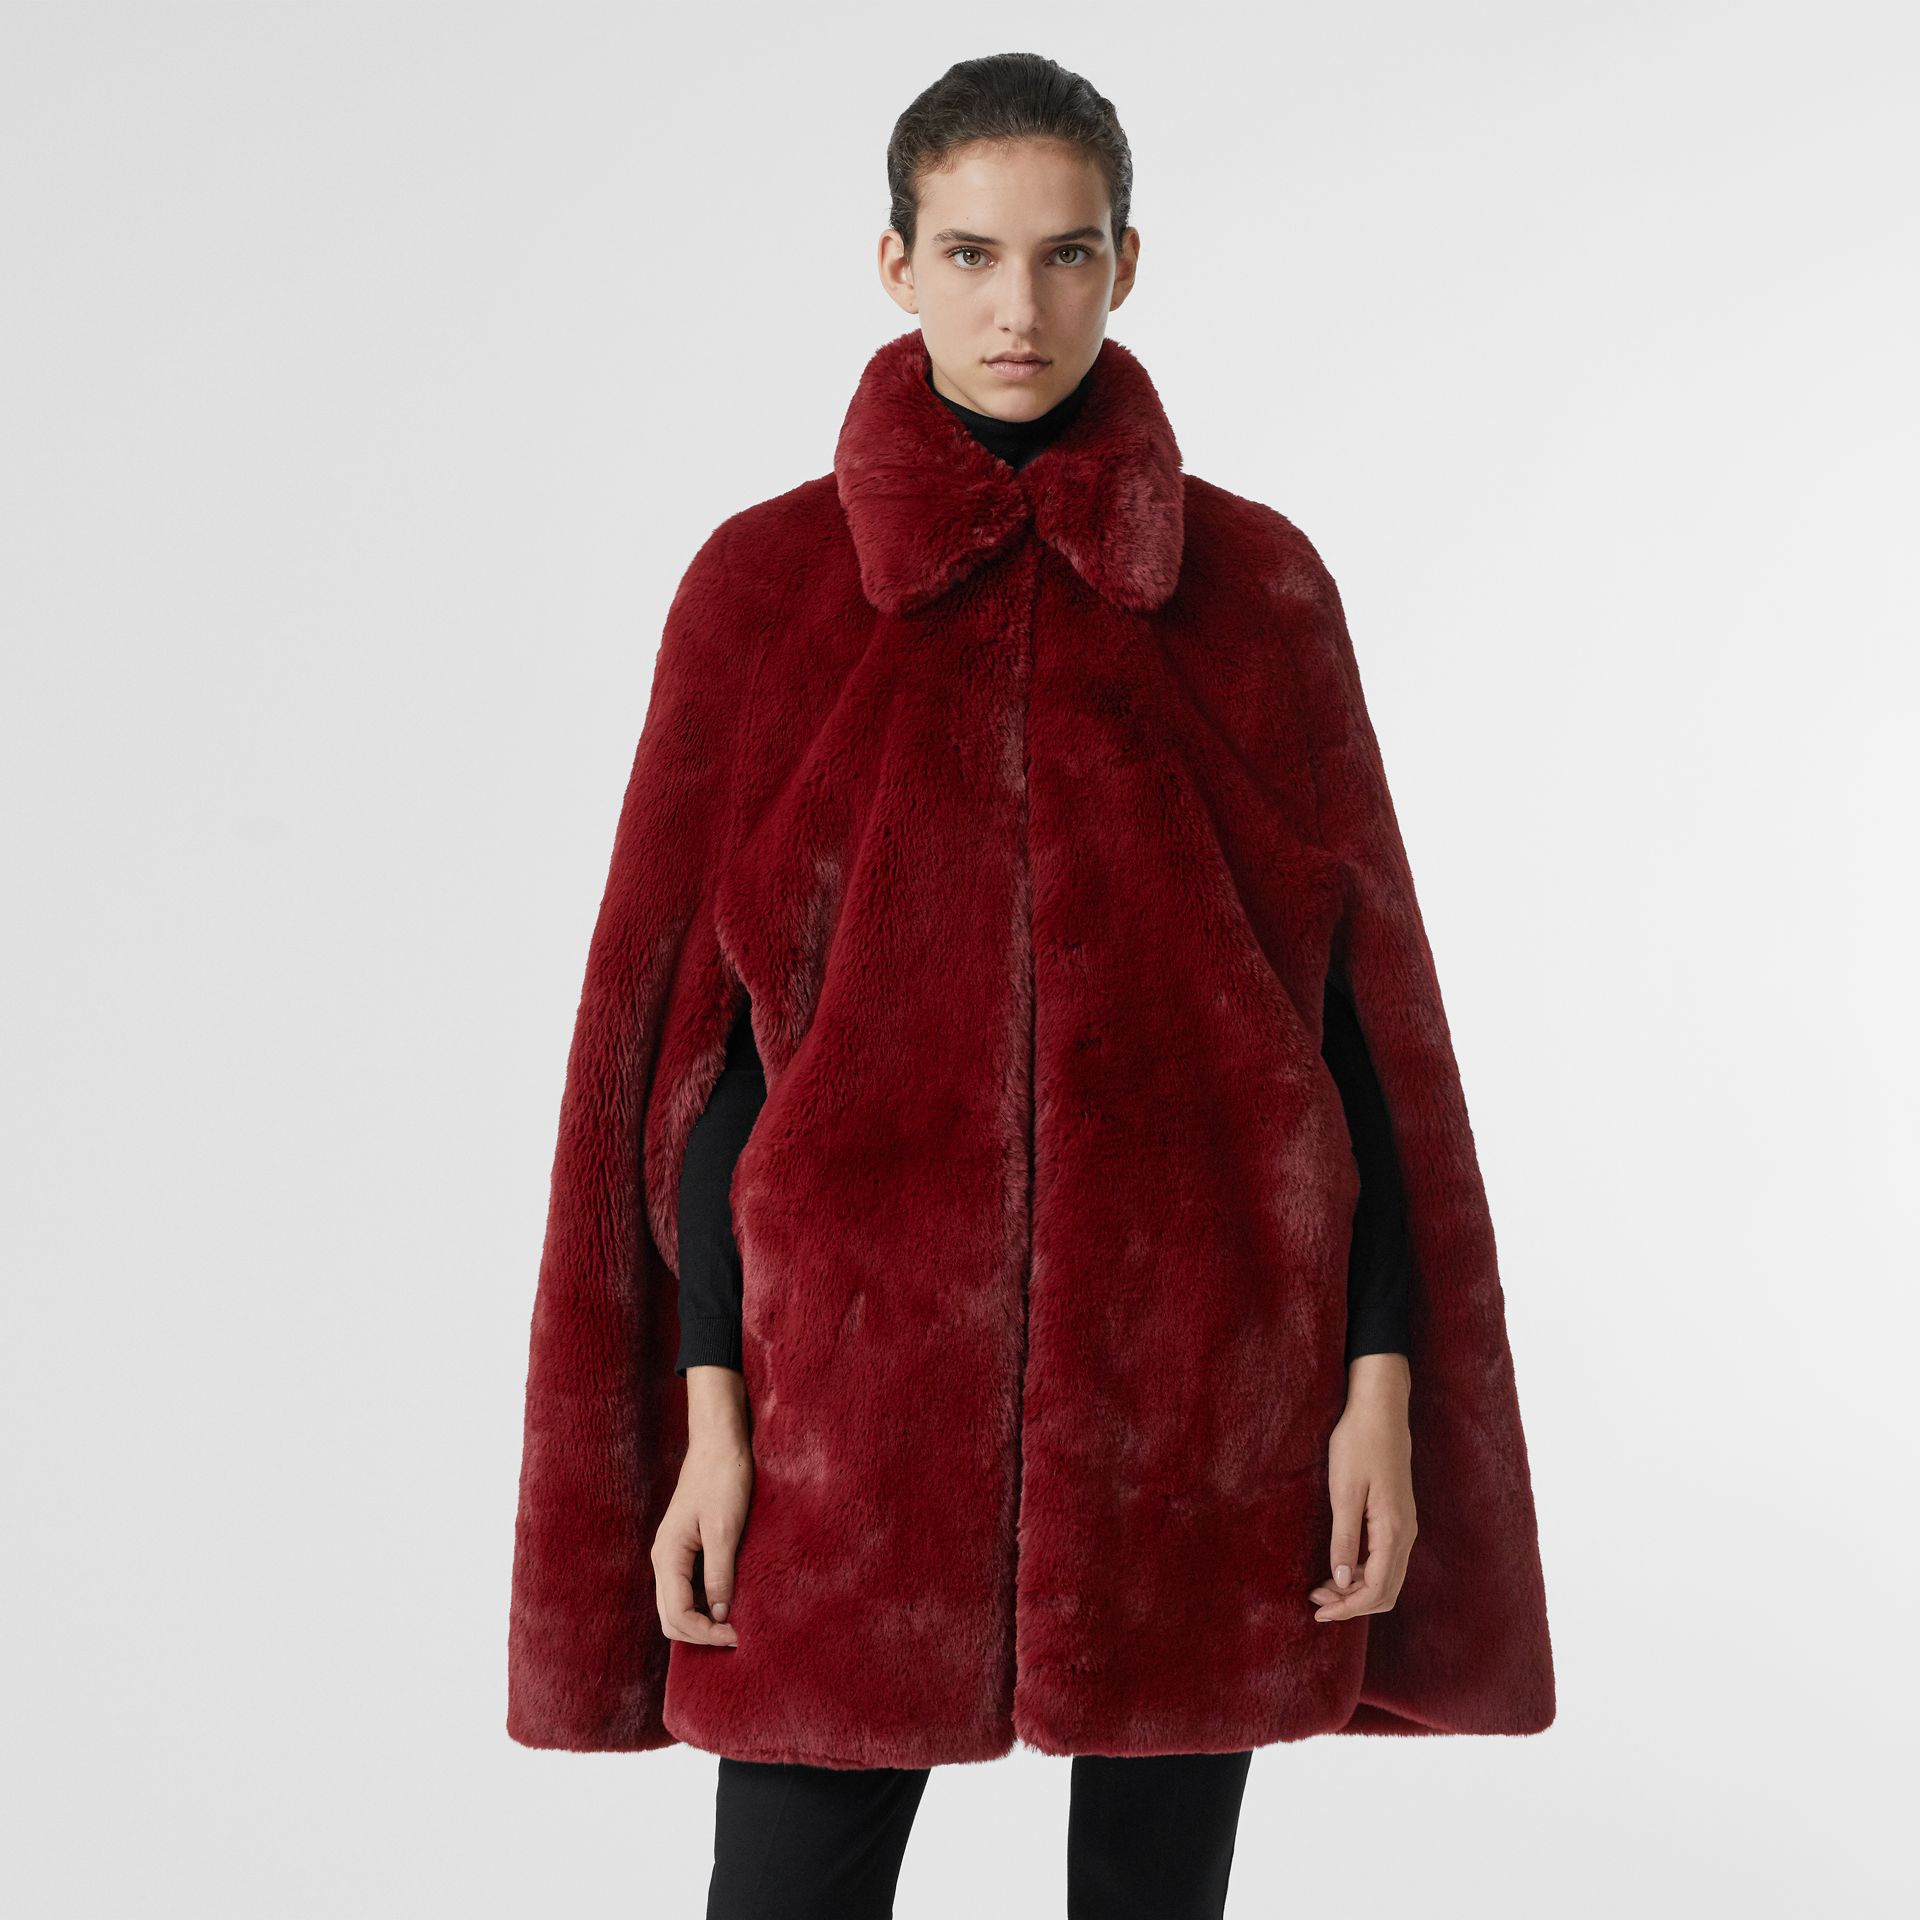 Faux Fur Cape in Burgundy - Women | Burberry - gallery image 4